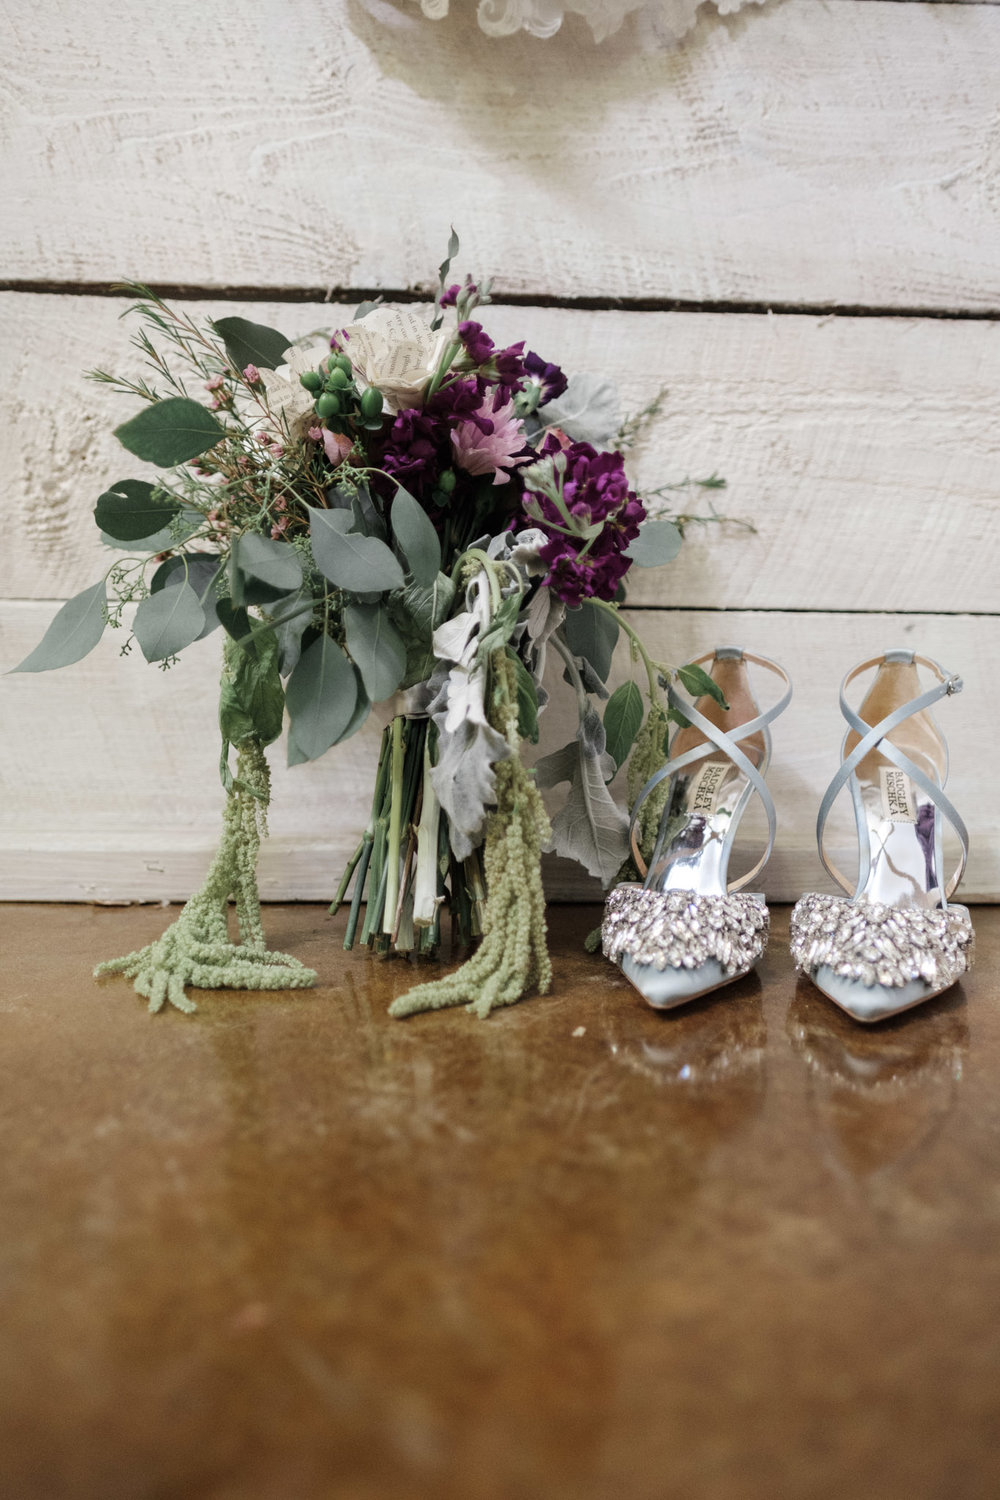 Bridal flowers and blue sparkly shoes against white shiplap wall at WIlliams Tree Farm wedding in Roscoe Illinois